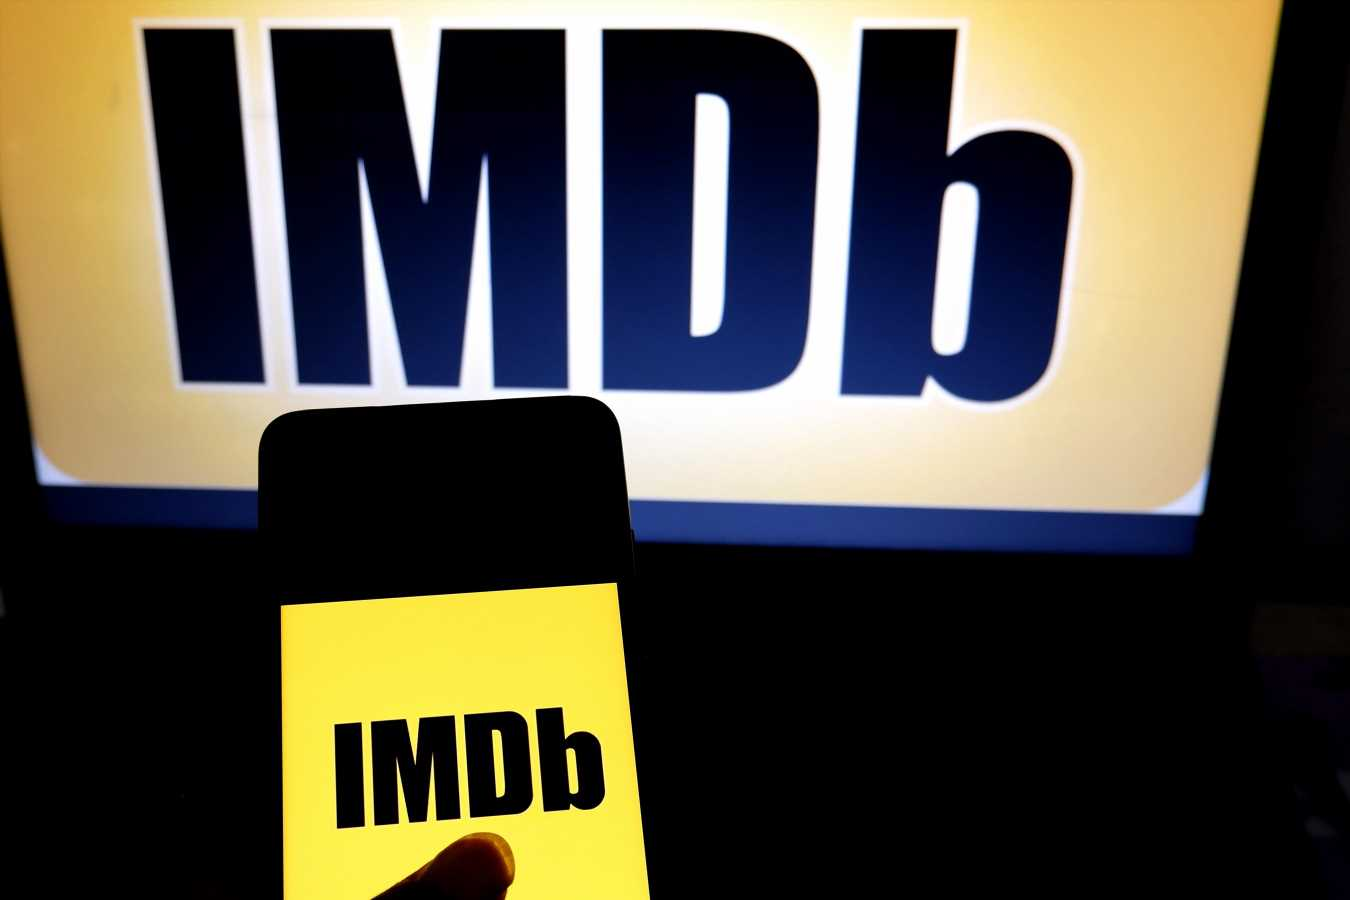 IMDb birth name policy changes after feedback from transgender actors